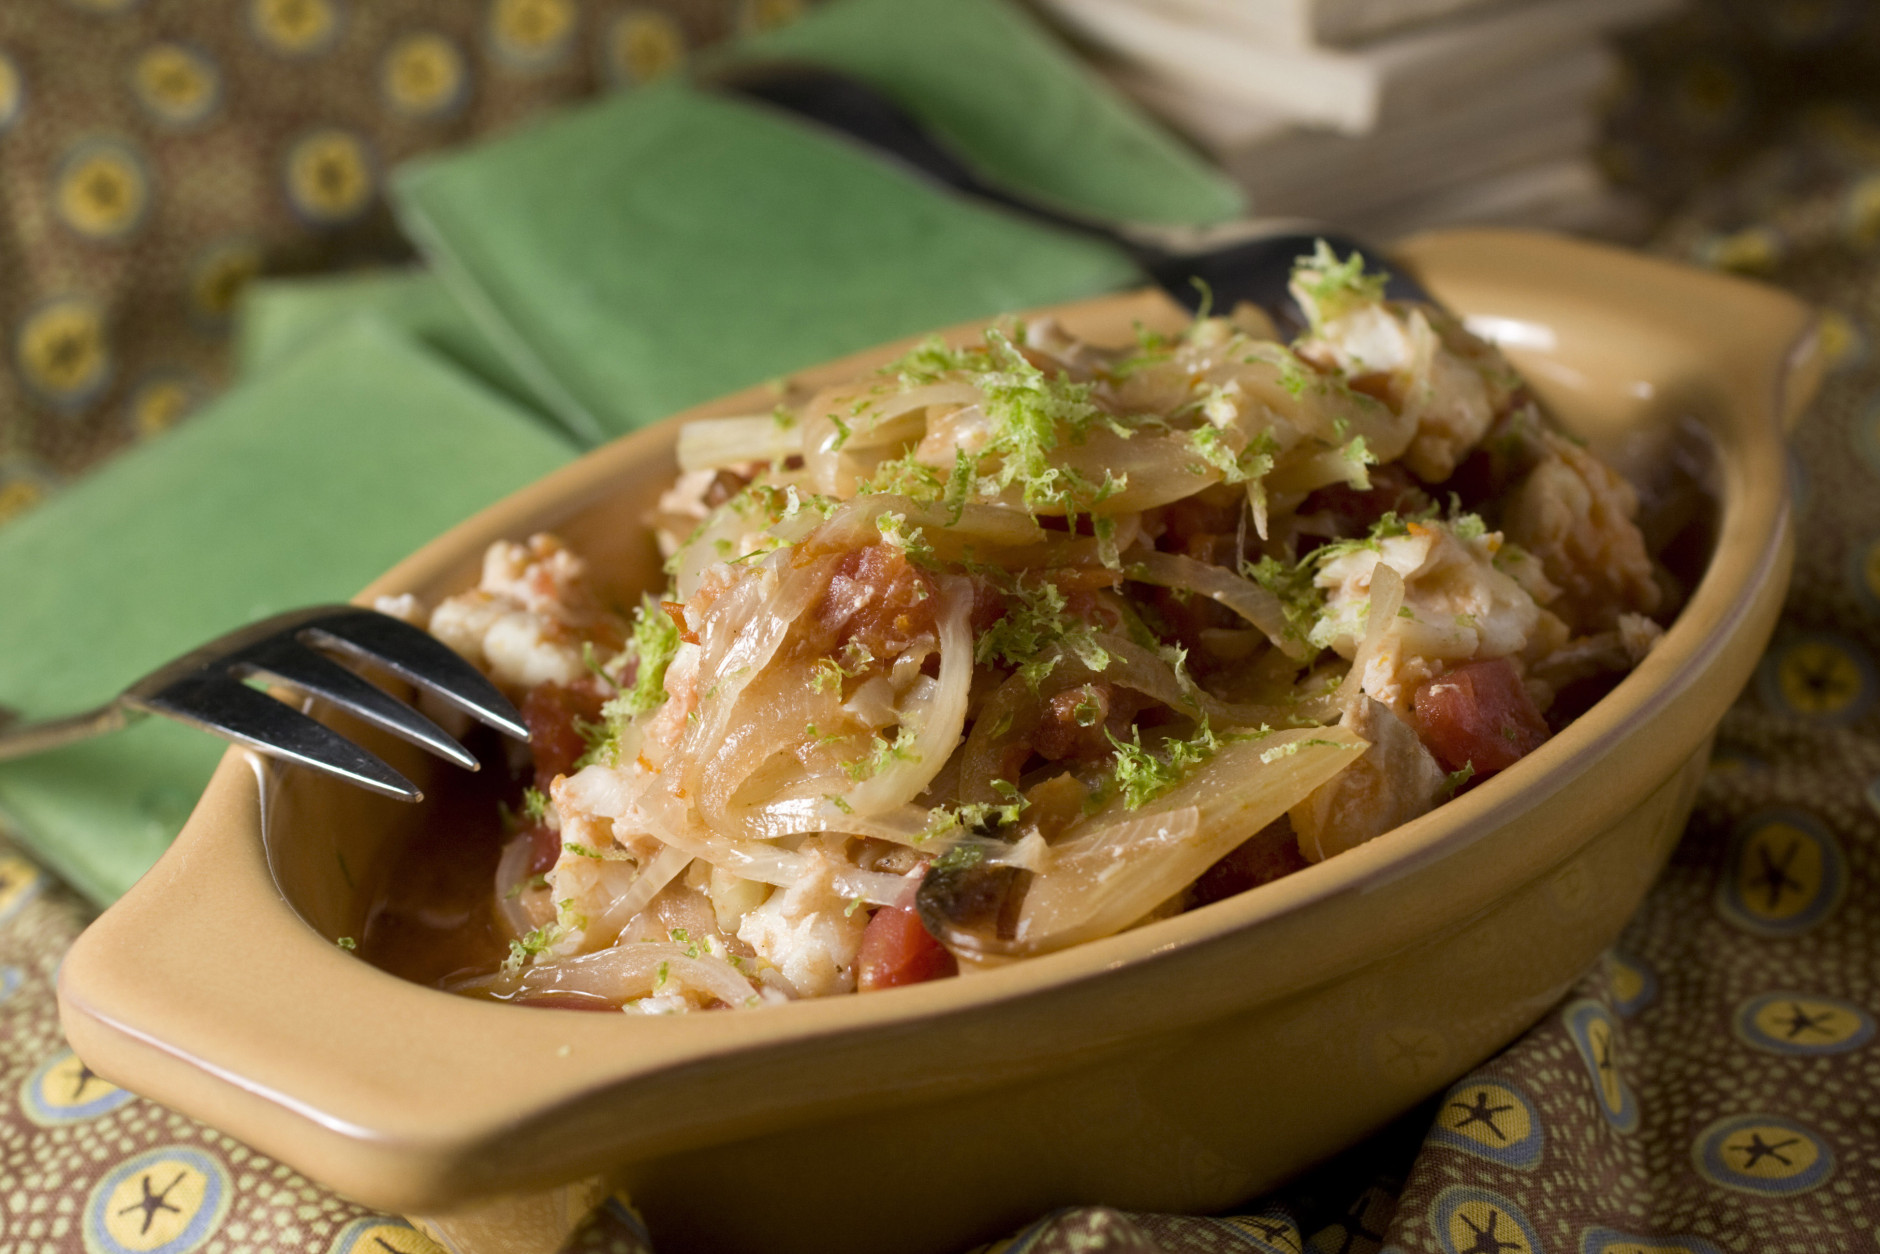 **FOR USE WITH AP LIFESTYLES**      Cod With Tomatoes and Fennel is seen in this Sunday, Dec. 7, 2008 photo. While seafood is a less than common meal for a slow-cooker this dish solves the problem of mushy results by adding the fish at the end of the cooking cycle.   (AP Photo/Larry Crowe)